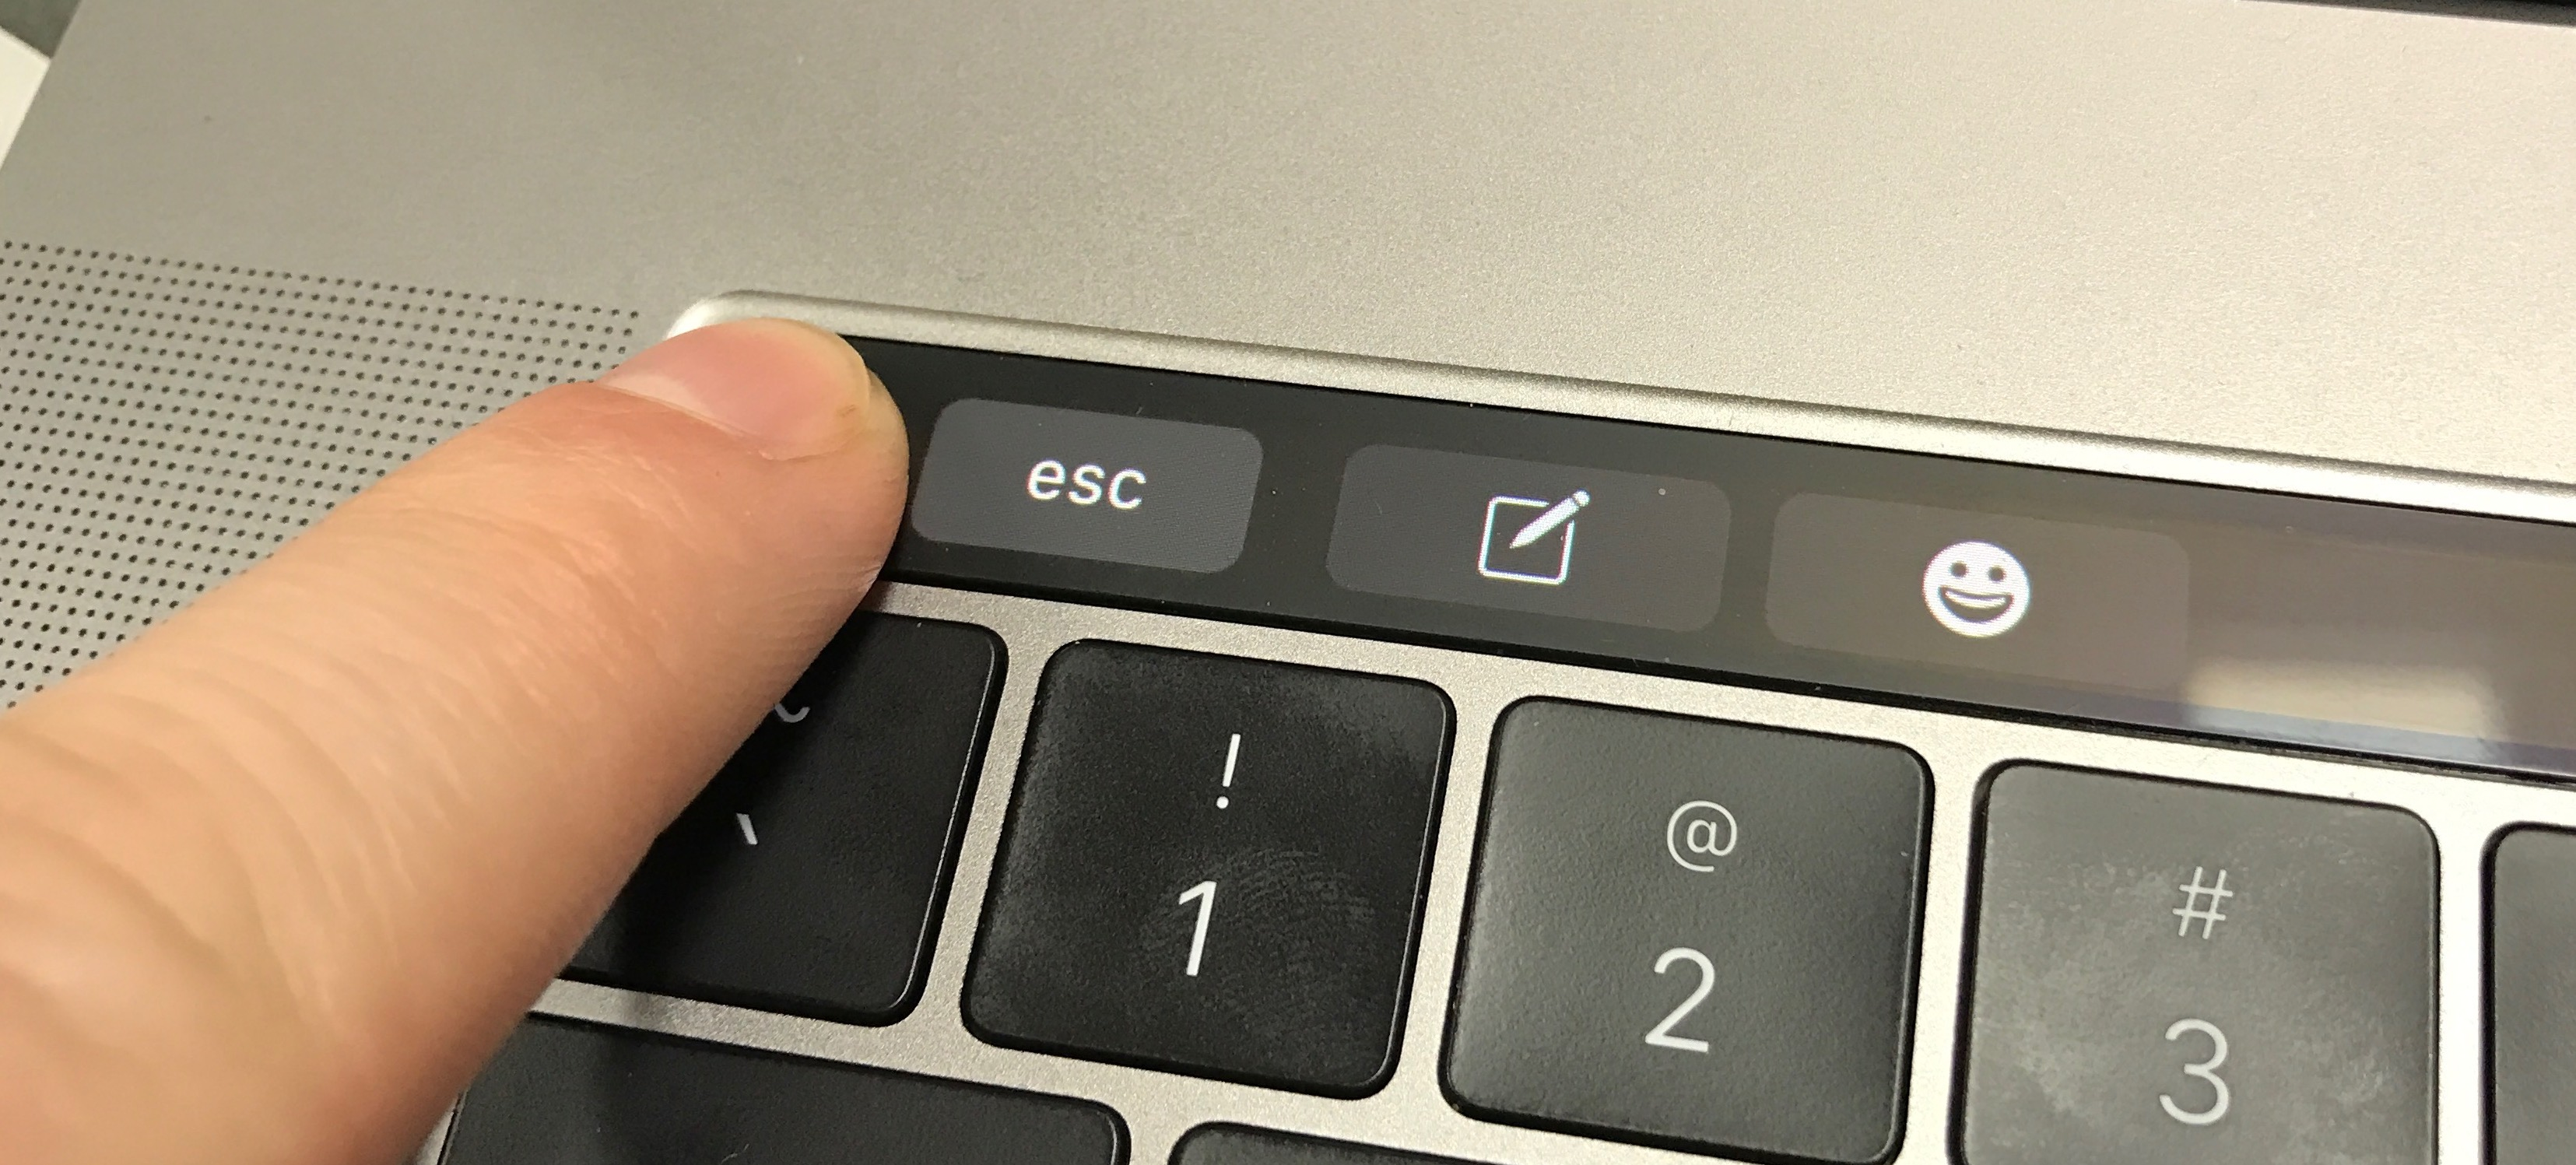 esc button touch bar